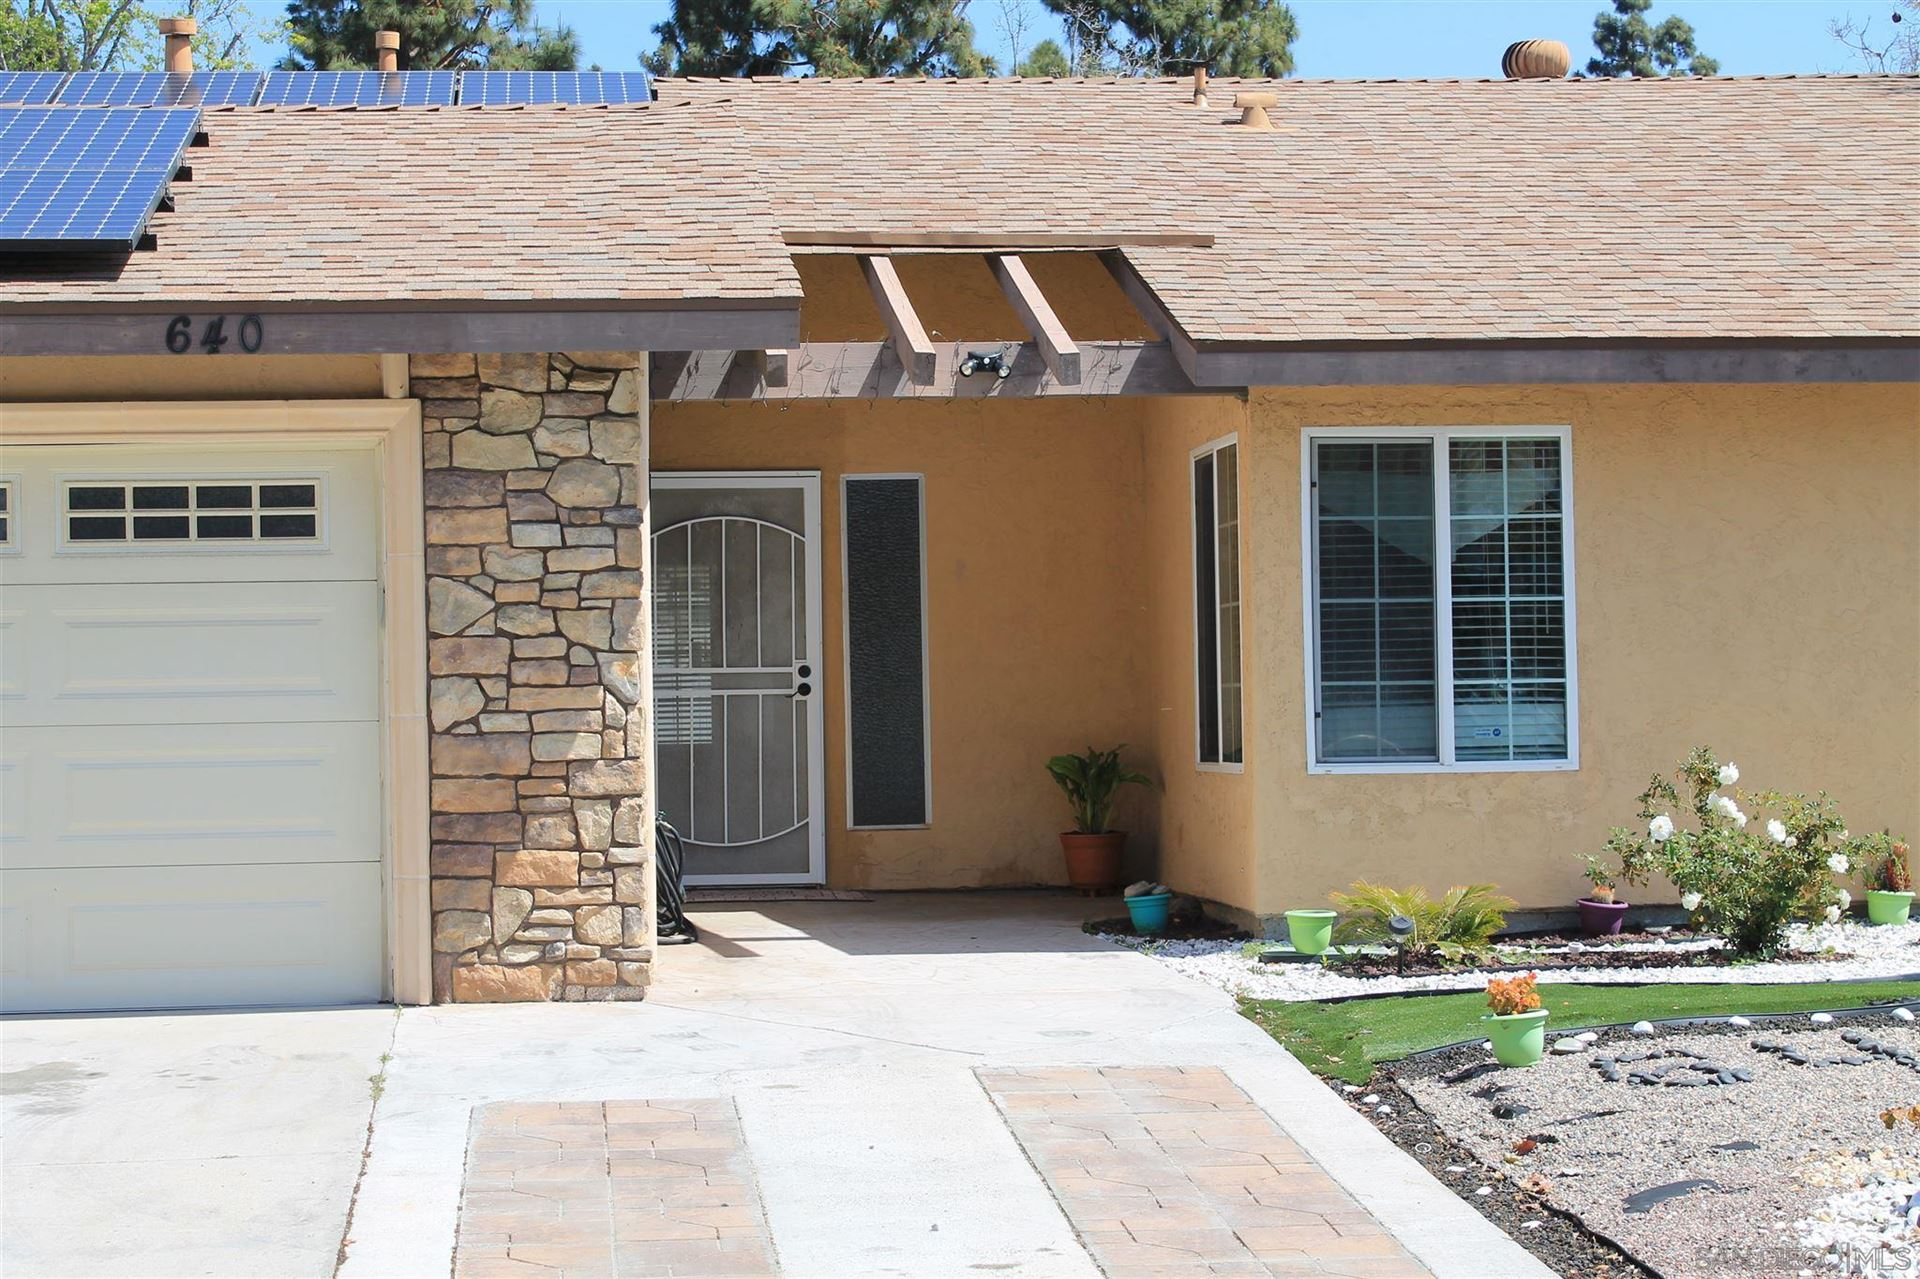 Photo of 640 Cable Ct, Oceanside, CA 92058 (MLS # 210008122)